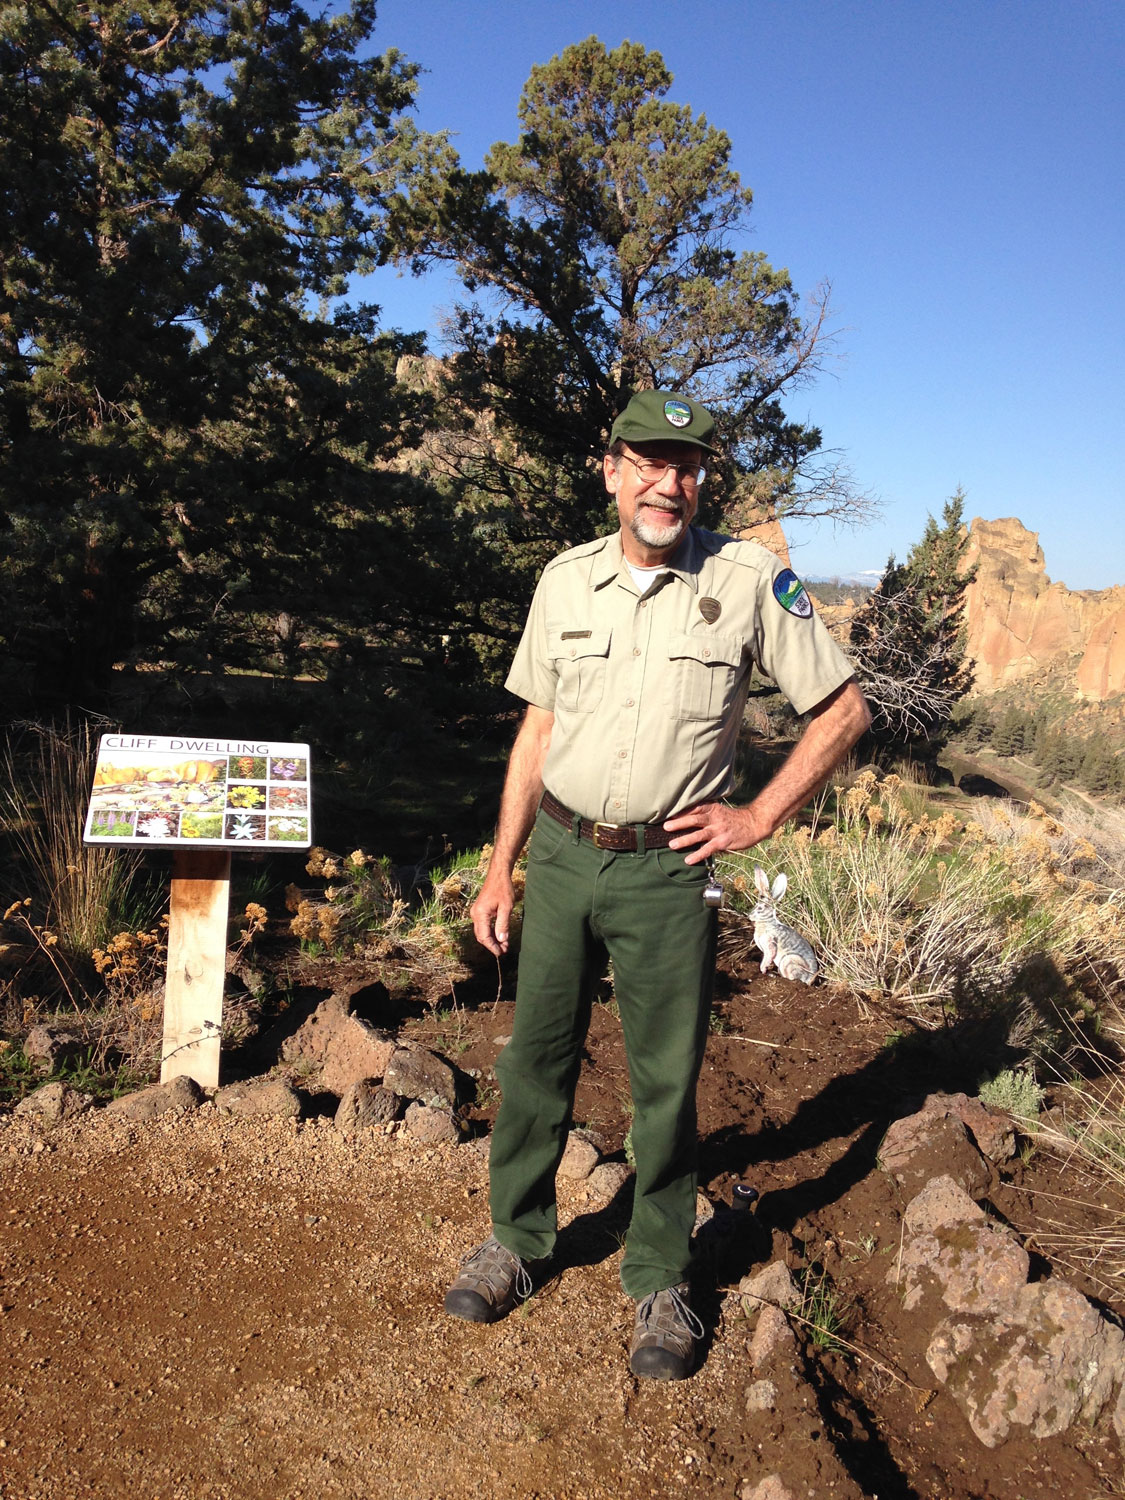 Smith Rock State Park Interpretative Naturalist David Vick